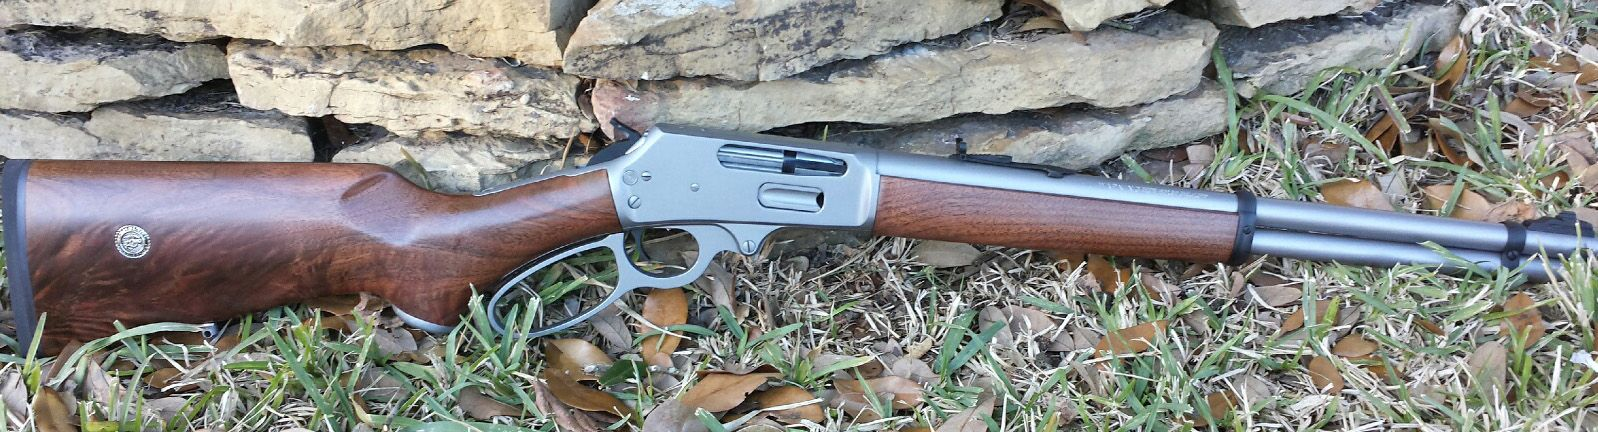 custom built marlin lever action rifle for a u s marine note the